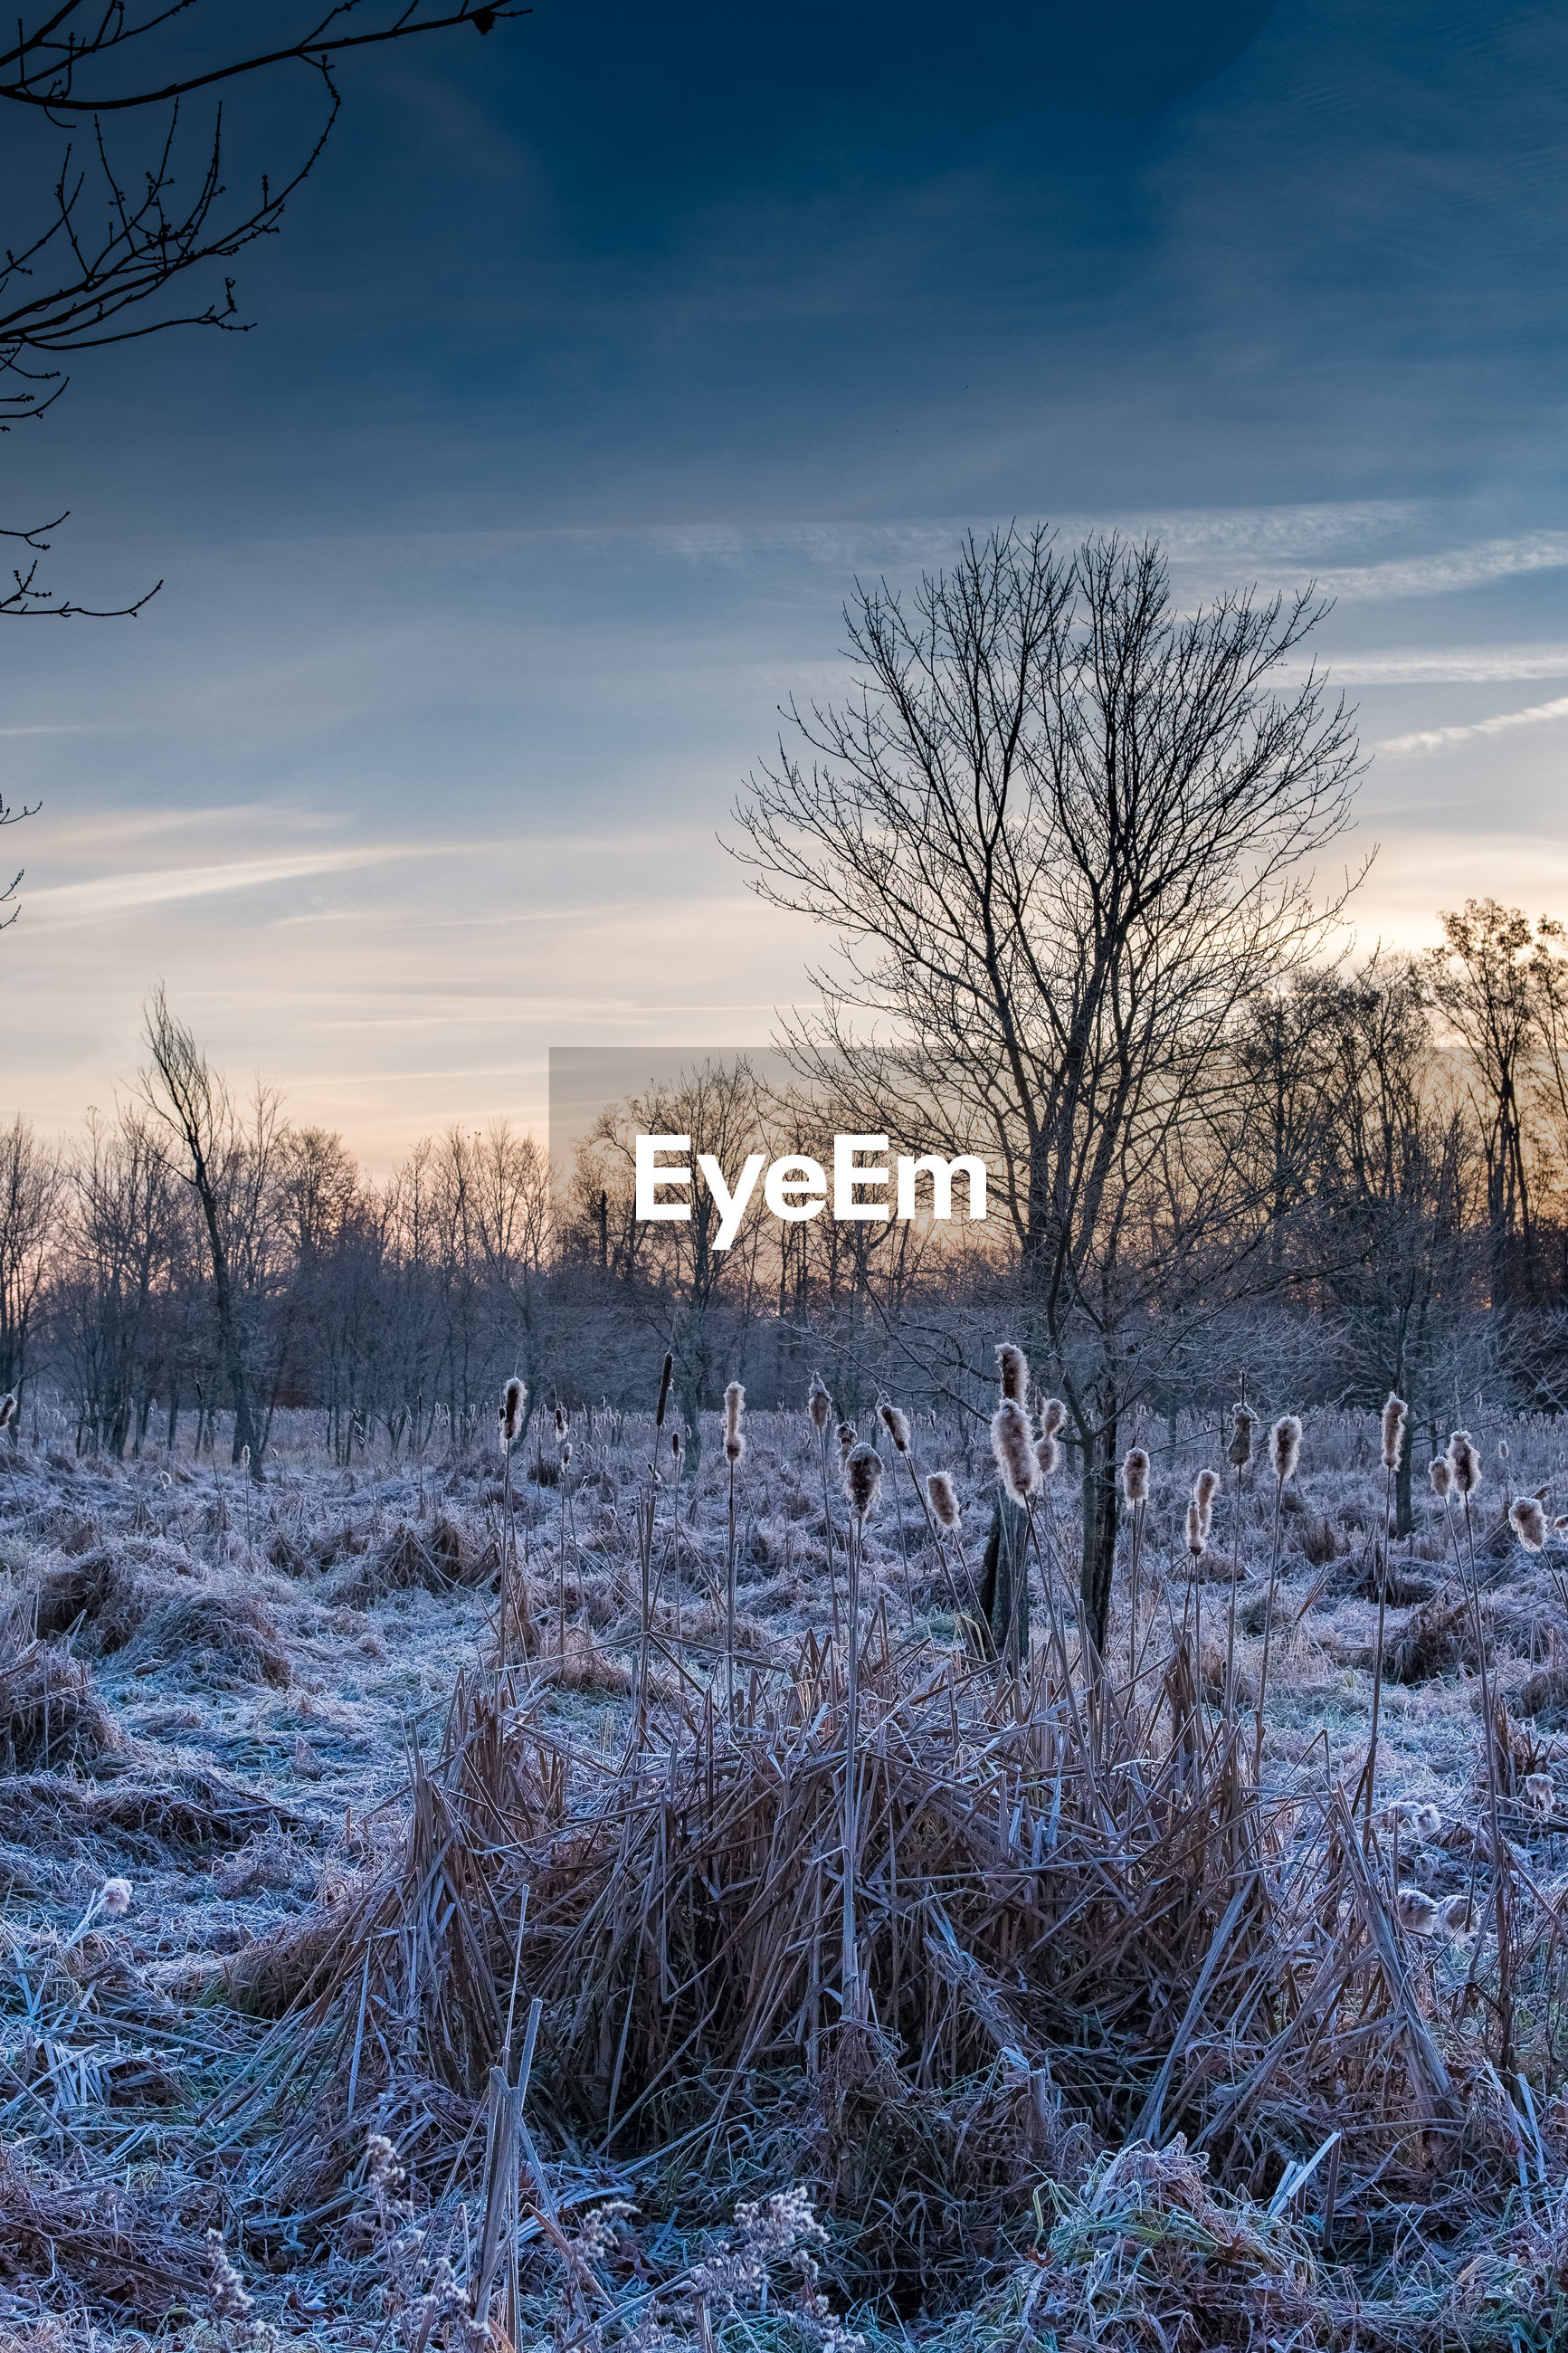 BARE TREES ON FIELD DURING WINTER AGAINST SKY